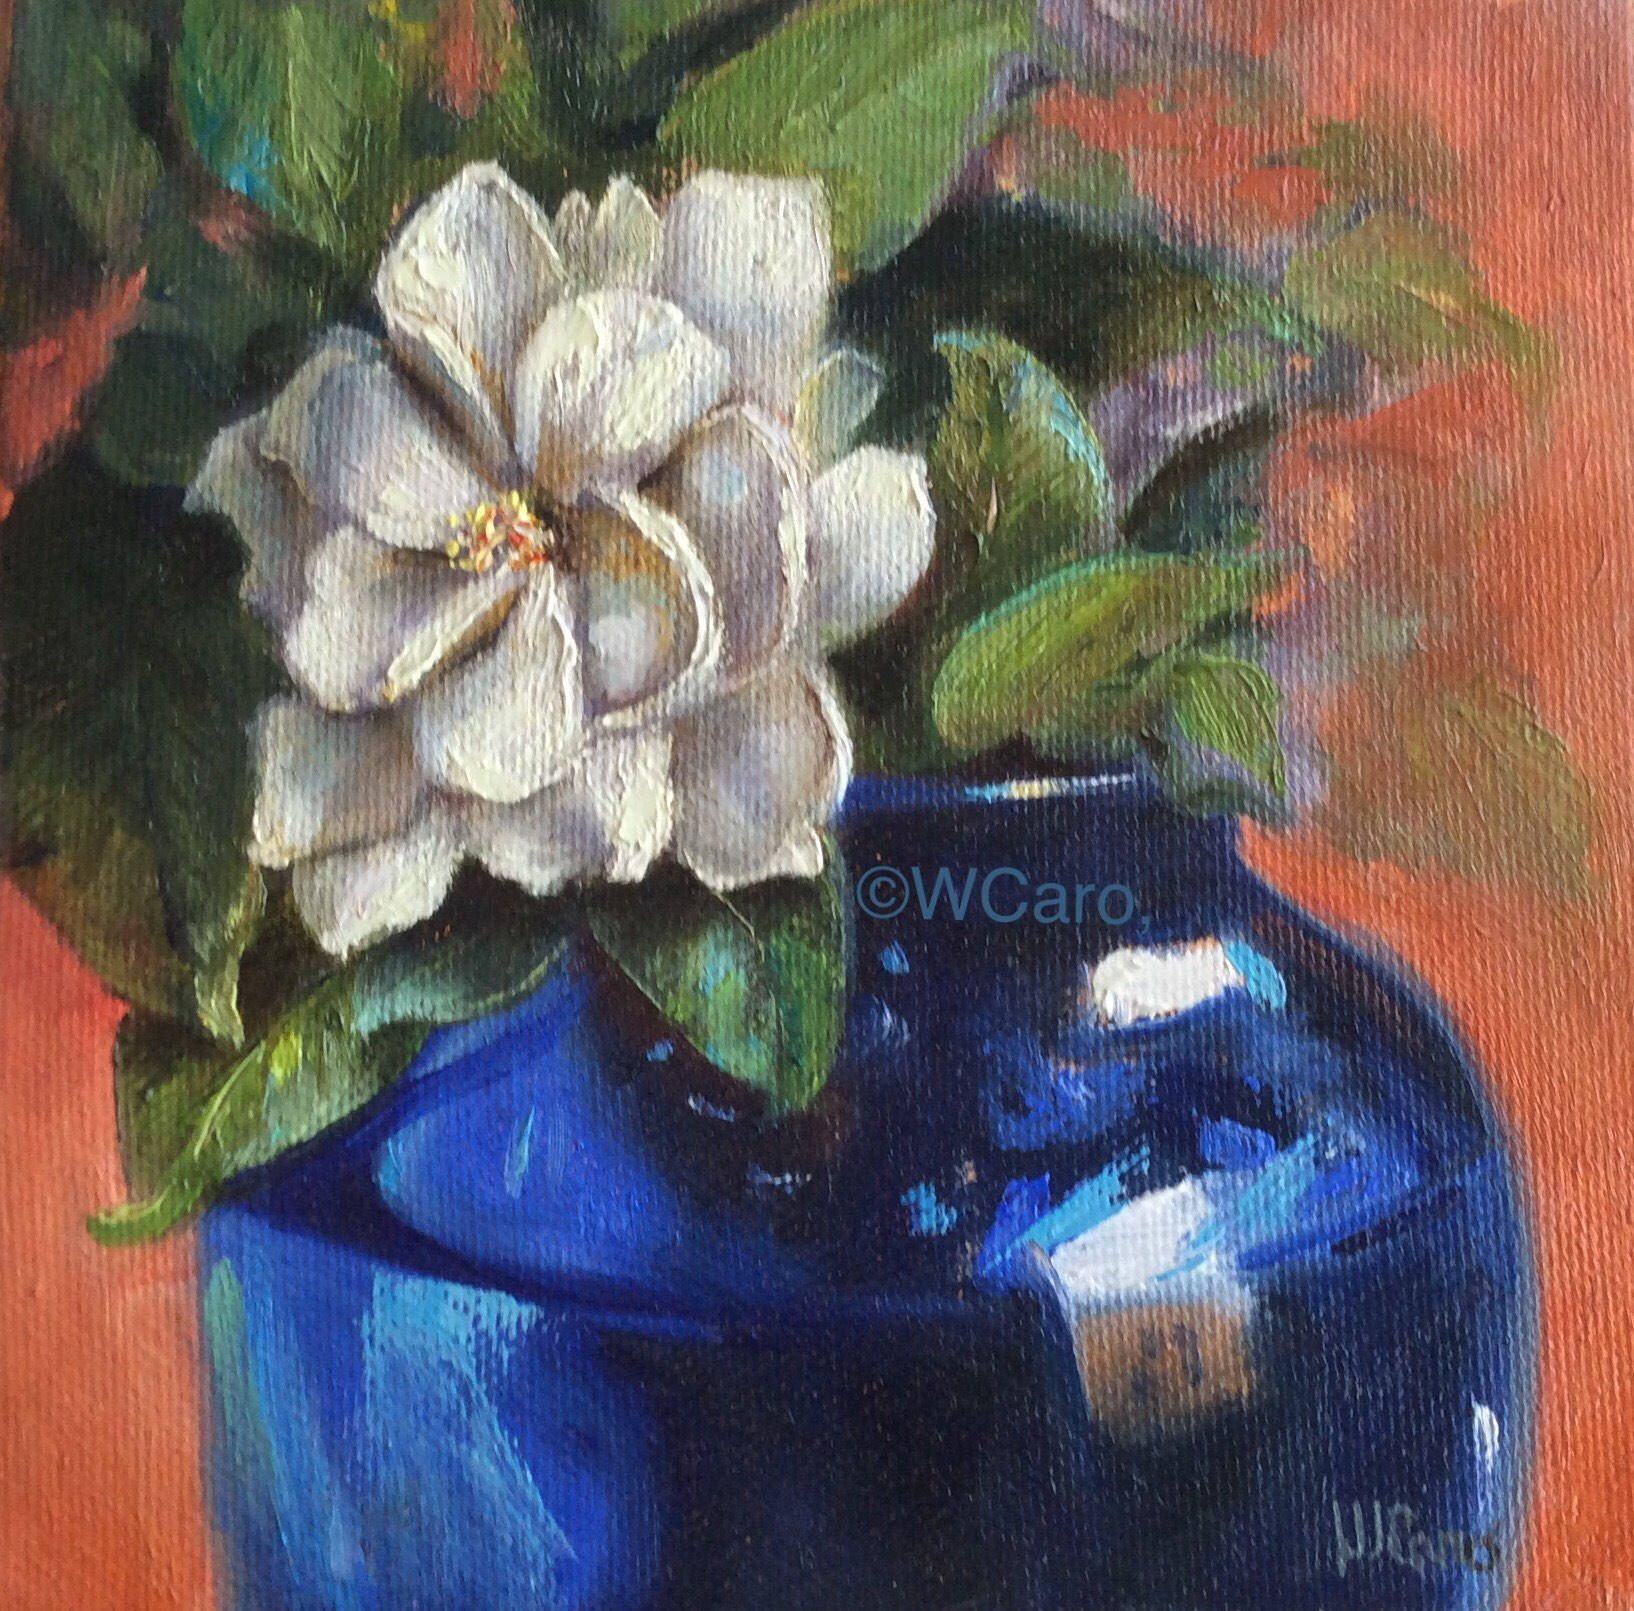 6x6 glass vase of gardenia in a blue glass vase 6x6 original oil painting on canvas throughout gardenia in a blue glass vase 6x6 original oil painting on canvas až